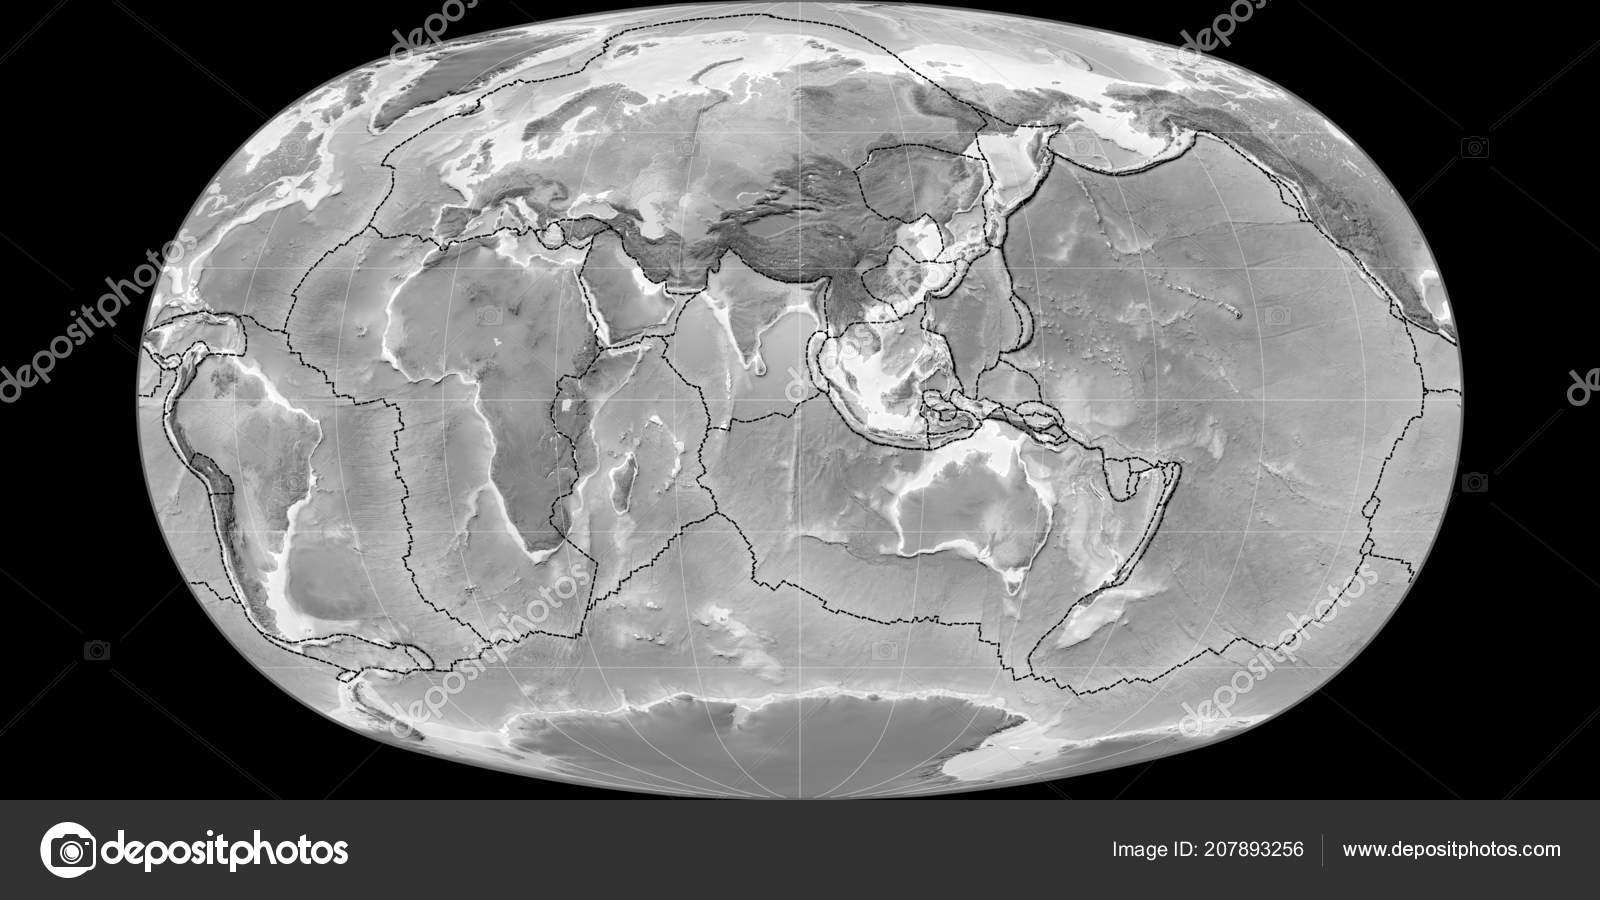 World map baranyi projection centered east longitude grayscale world map baranyi projection centered east longitude grayscale elevation map fotos de stock gumiabroncs Image collections